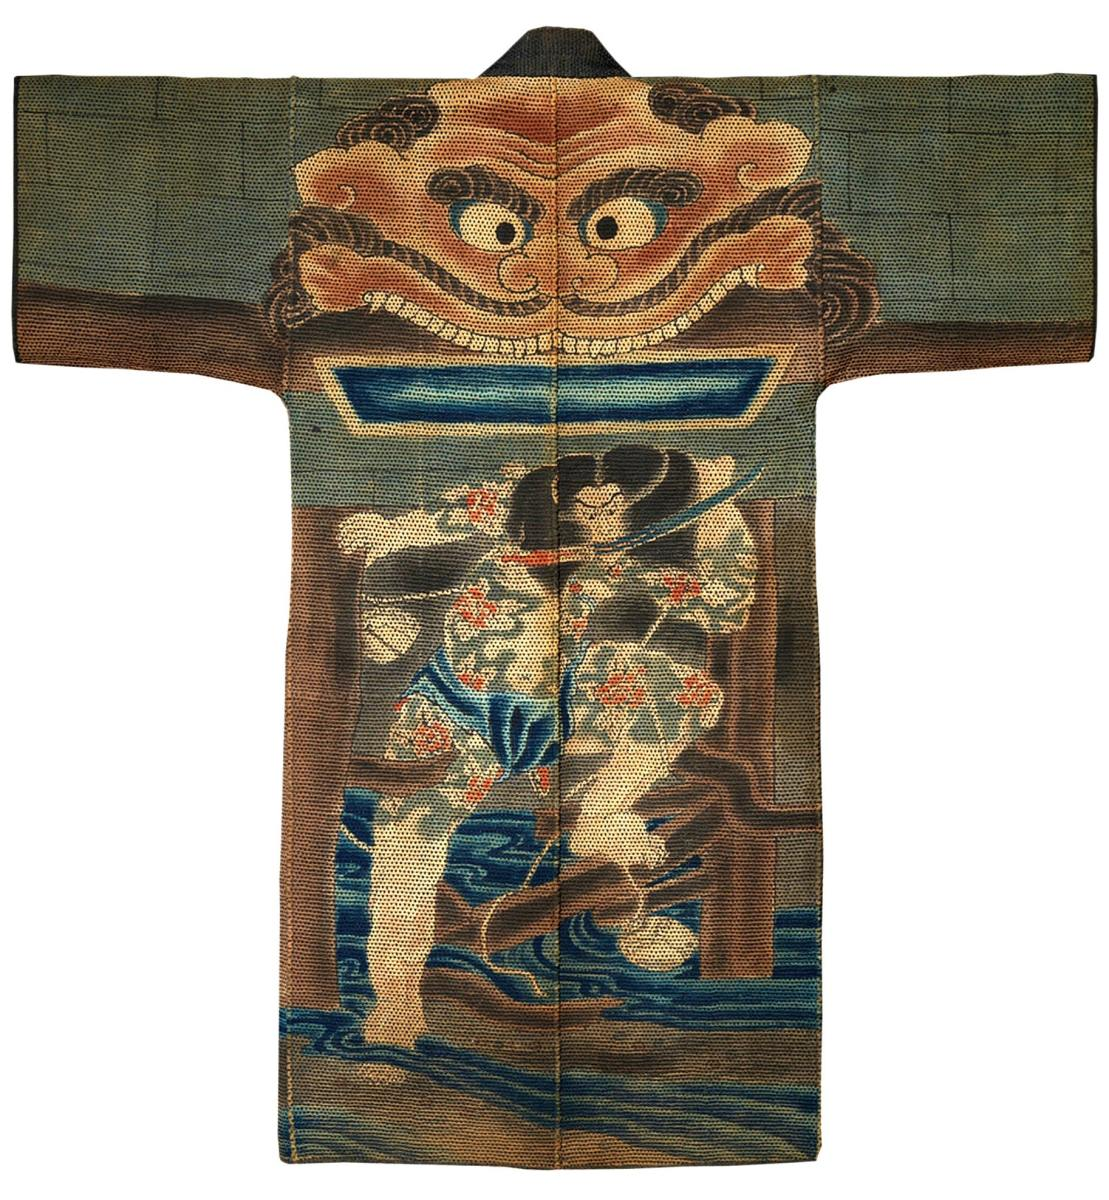 This mid-19th century jacket is decorated with the image of Rorihakucho Cho Jun (Zhang Shun), whose fearlessness and courage was popular in 19th-century Japan. Cho Jun was one of the 108 heroes of the Stories of the Water Margin, translated from Chinese into Japanese during the second half of the Edo period, and became the subject of works by celebrated print artists. This composition is based on a print by Utagawa Kuniyoshi, published around 1827–30. The righteous rebel is seen carrying a sword in his mouth as his characteristically pale, muscular and tattooed body forcefully emerges from a destroyed water gate.